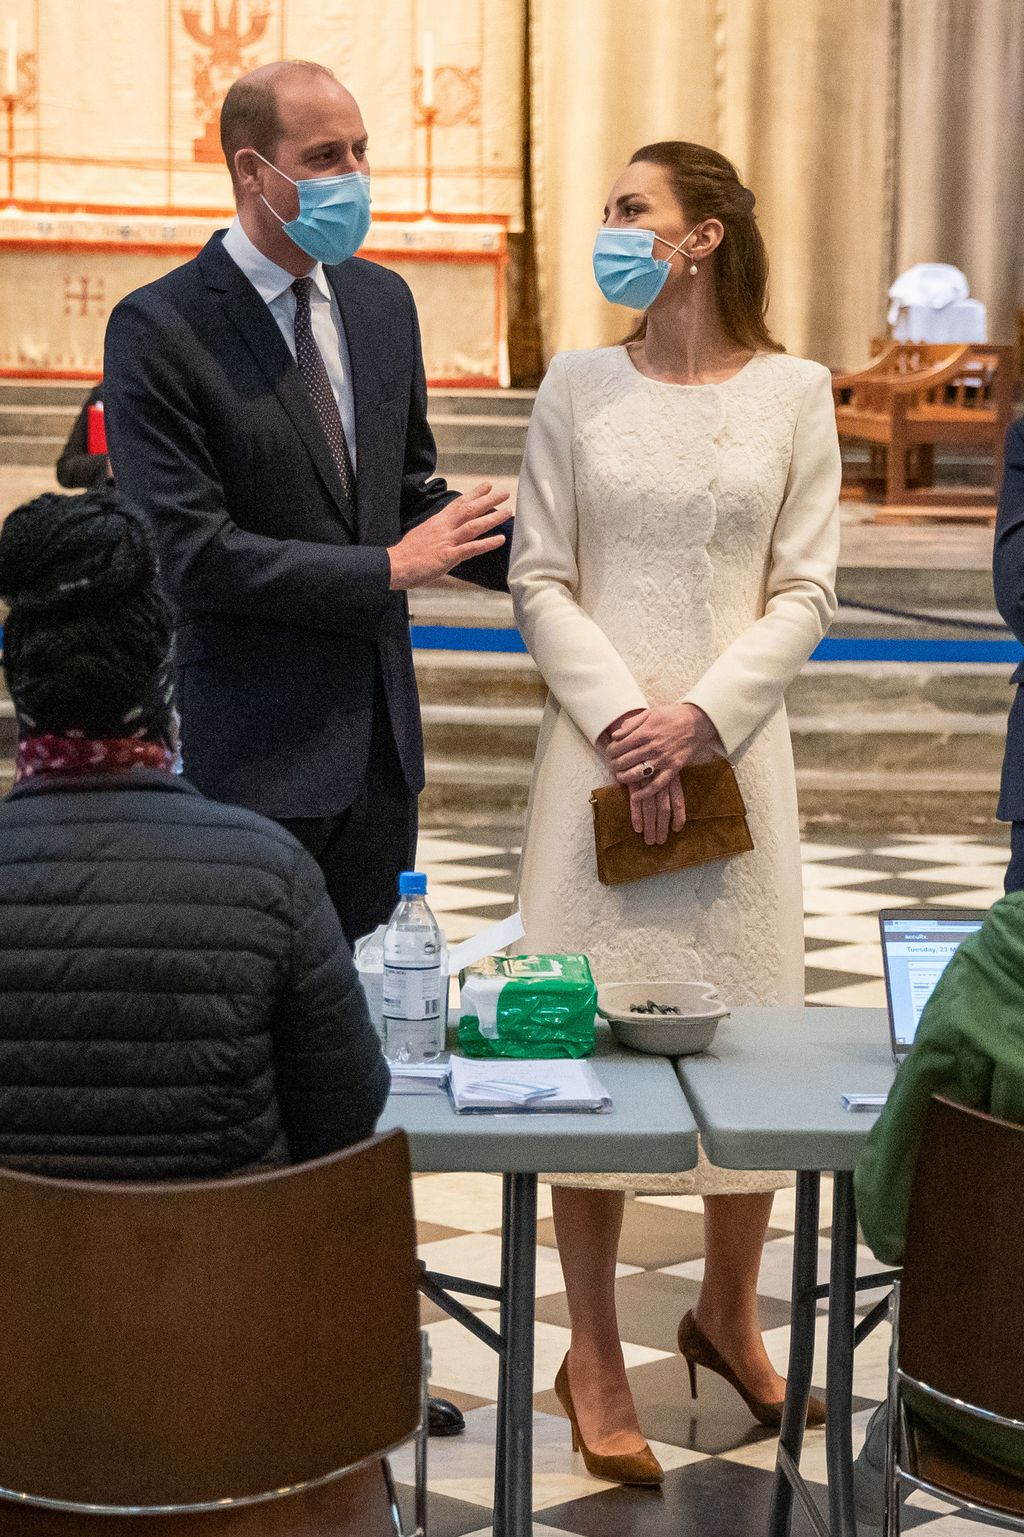 LONDON, ENGLAND - MARCH 23: Prince William, Duke of Cambridge and Catherine, Duchess of Cambridge speak with staff during a visit to the Covid-19 vaccination centre at Westminster Abbey on March 23, 2021 in London, England. (Photo by Aaron Chown - WPA Pool/Getty Images)